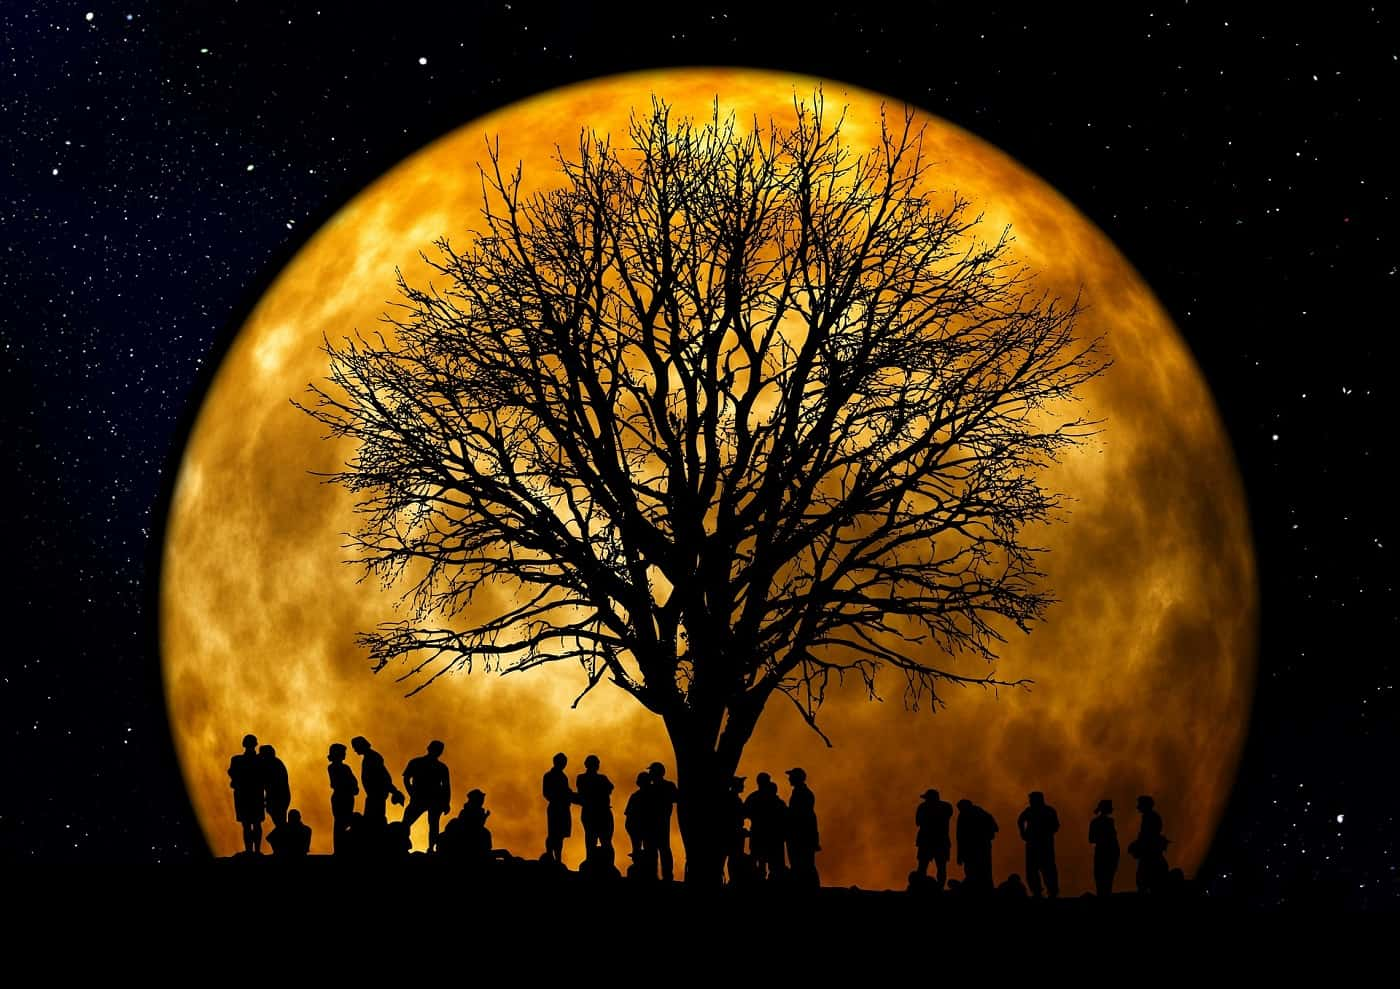 Silhouettes of people in front of large moon